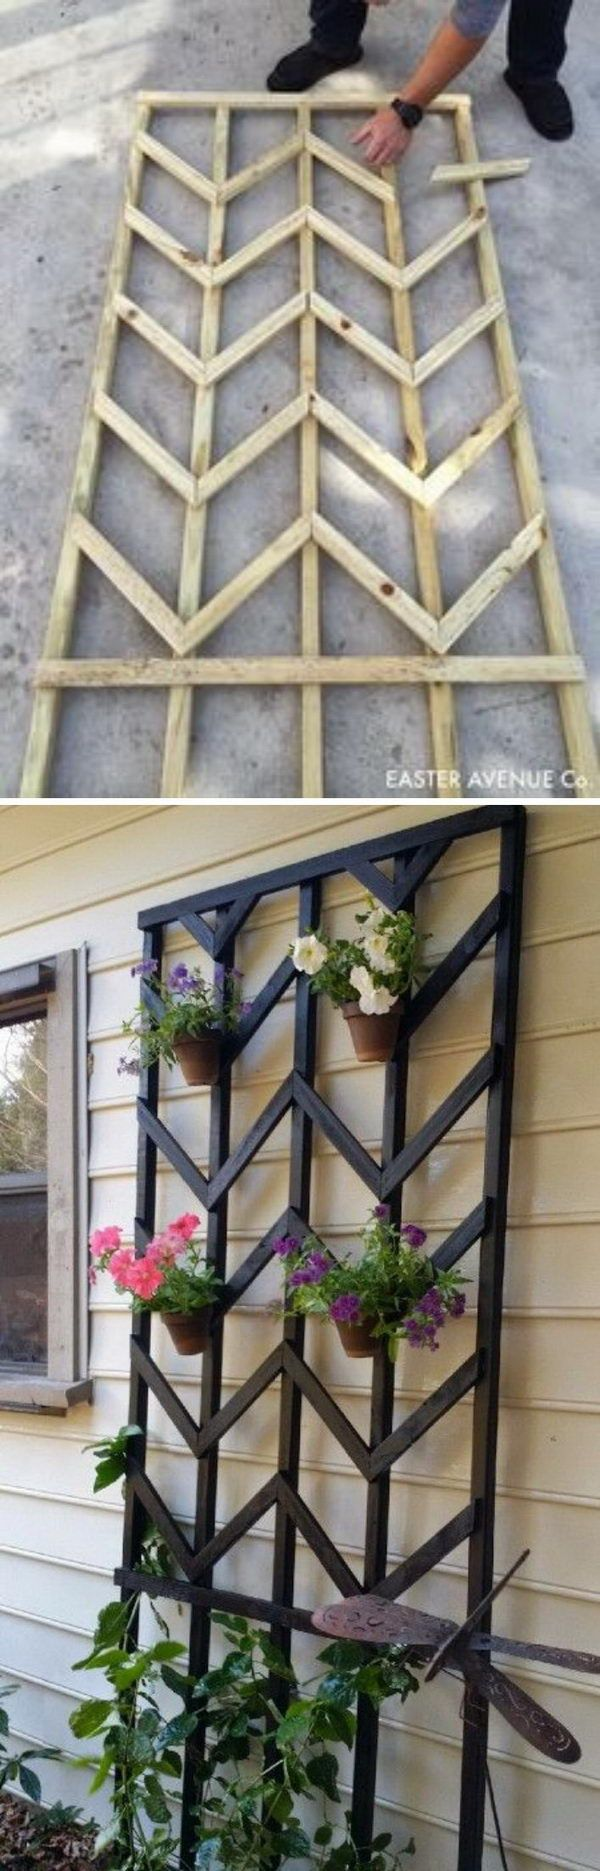 These DIY trellis projects will add a beautiful design to your porch